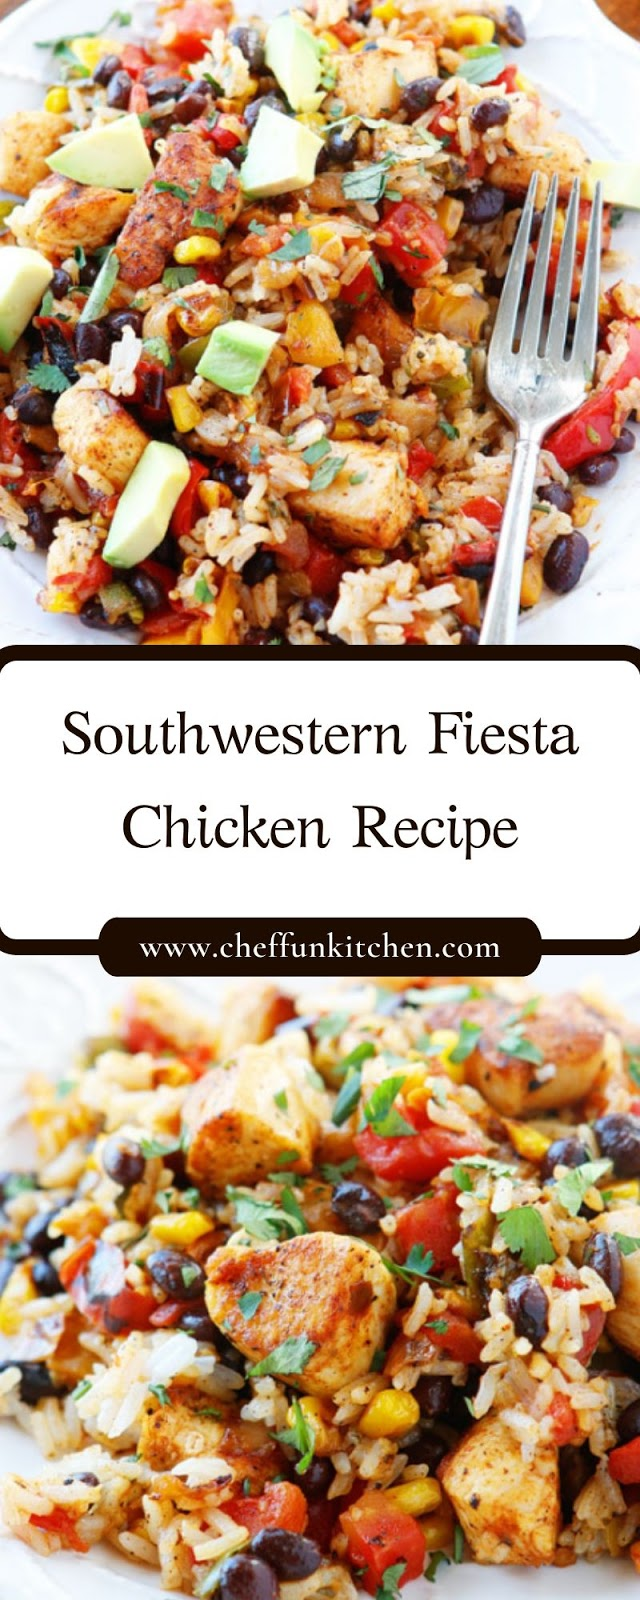 Southwestern Fiesta Chicken Recipe